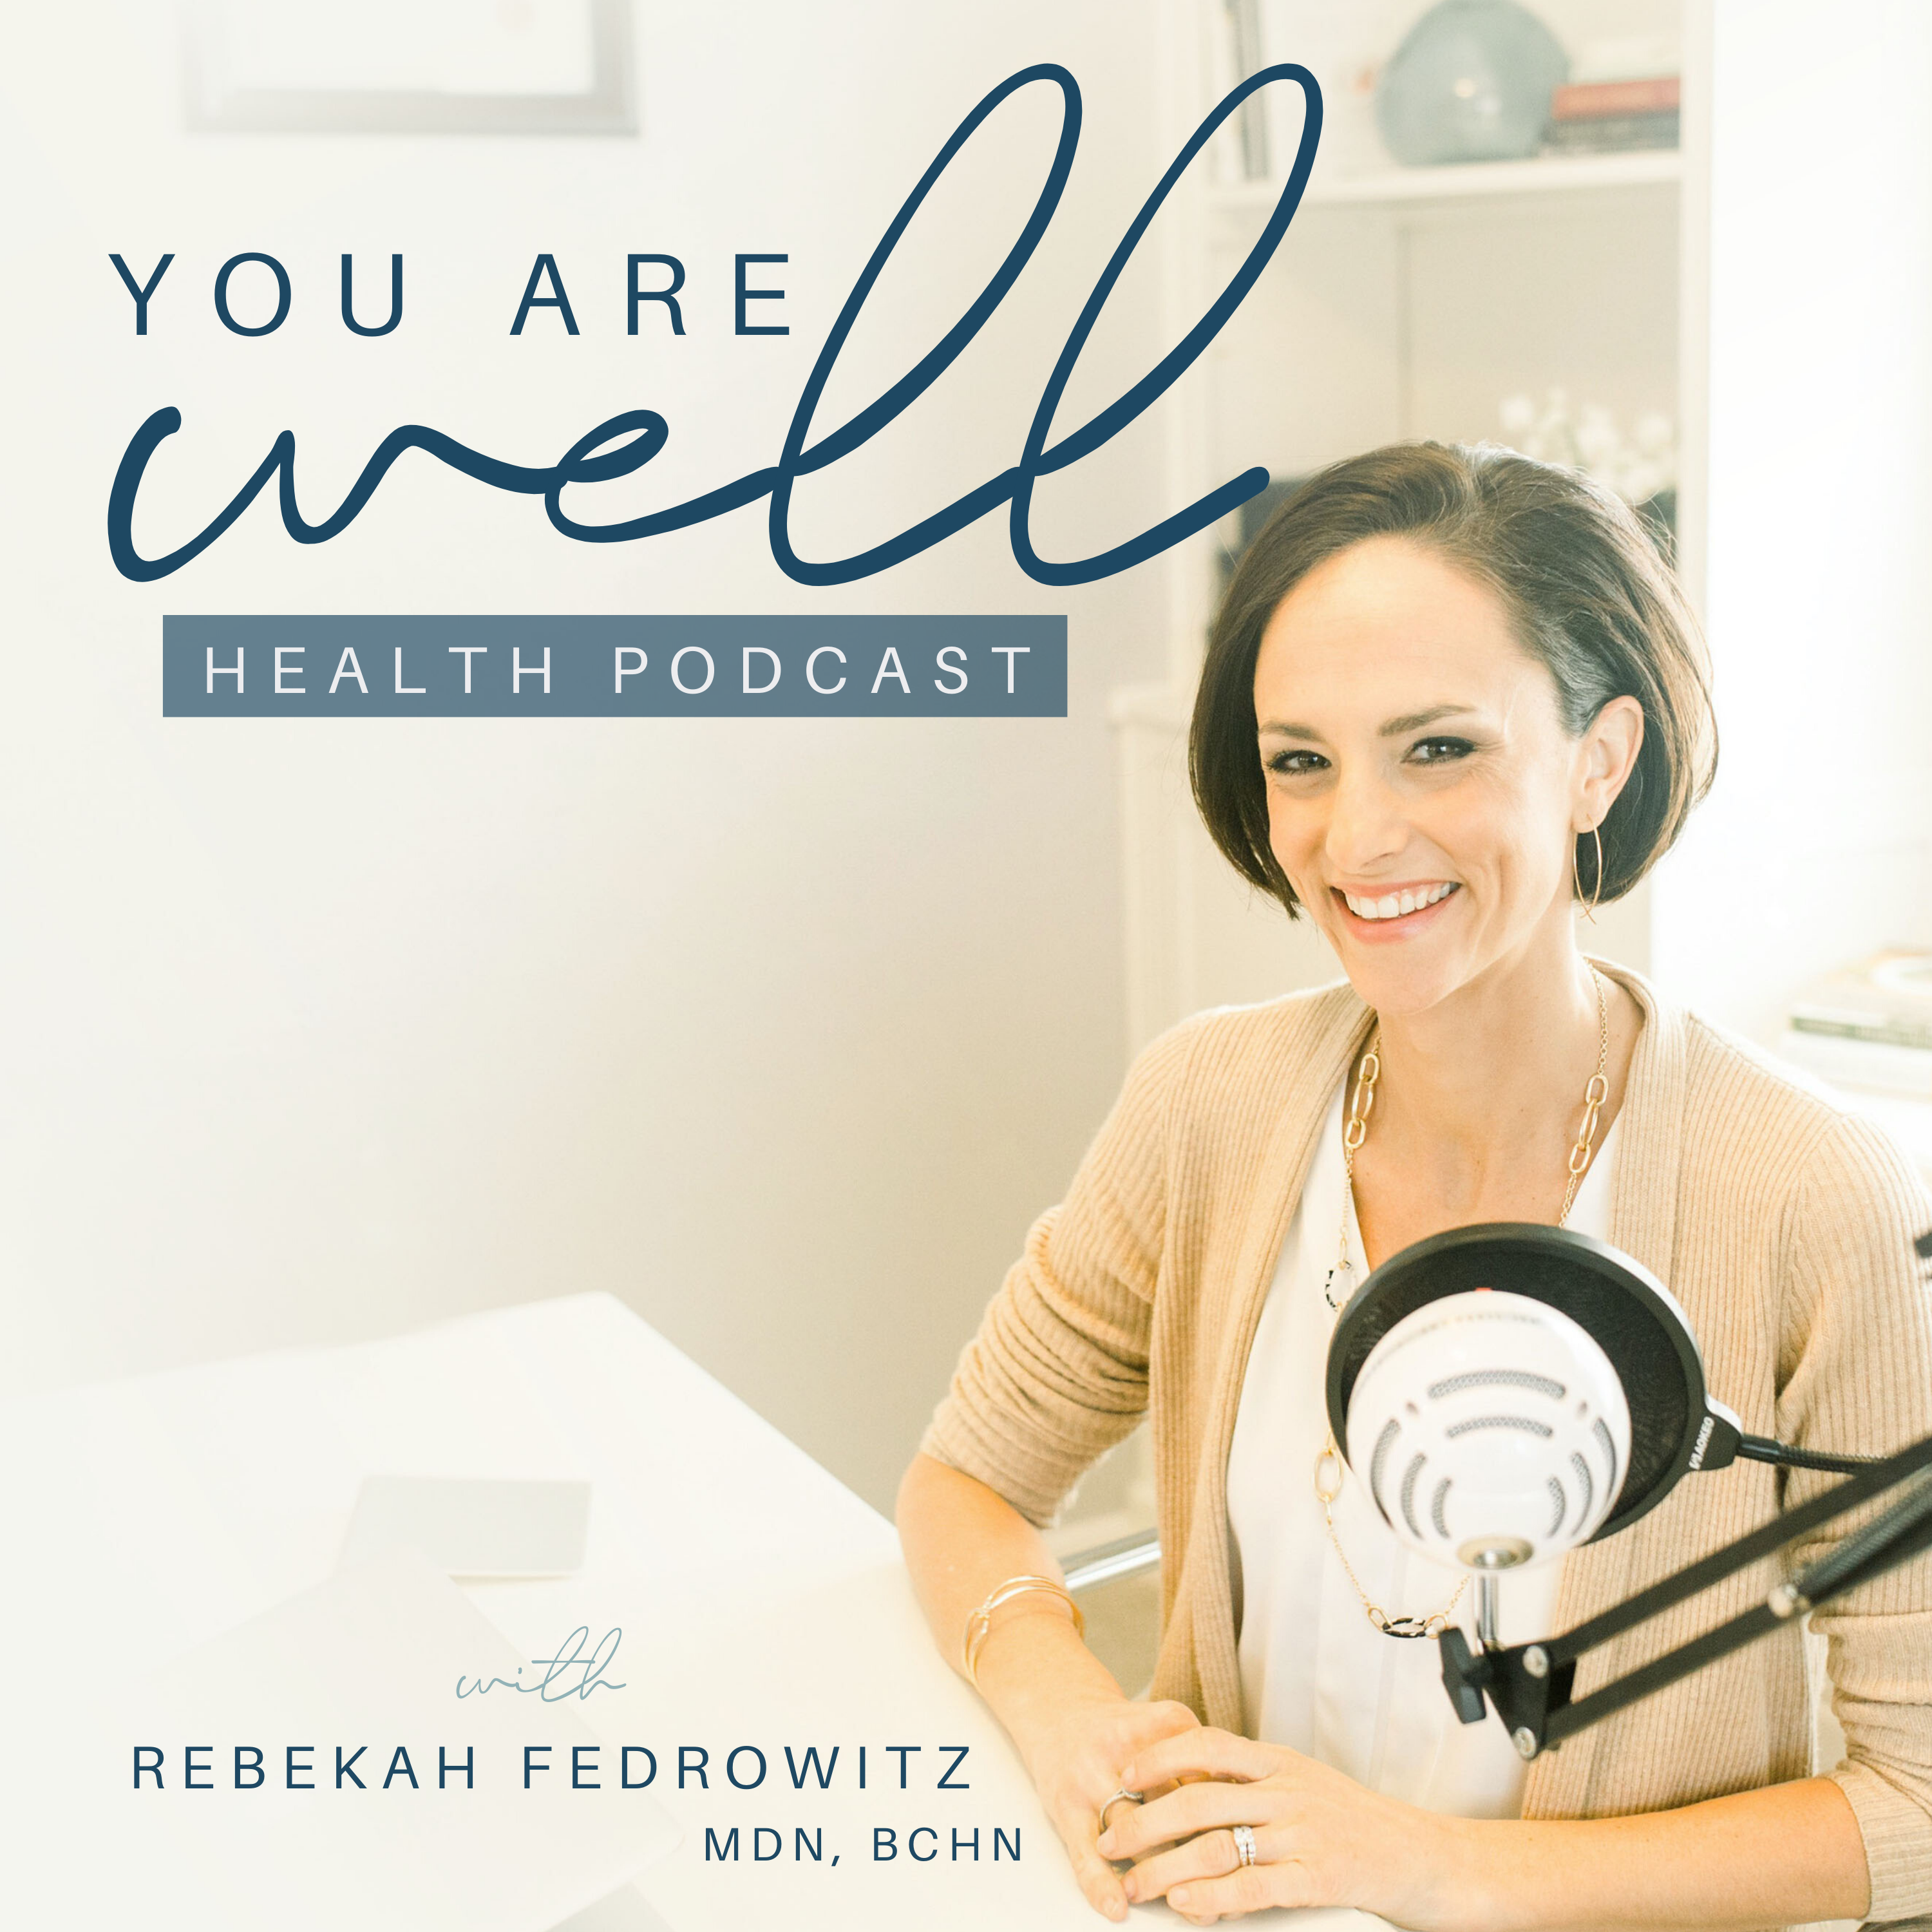 You Are Well Health Podcast with Rebekah Fedrowitz, MDN, BCHN show art